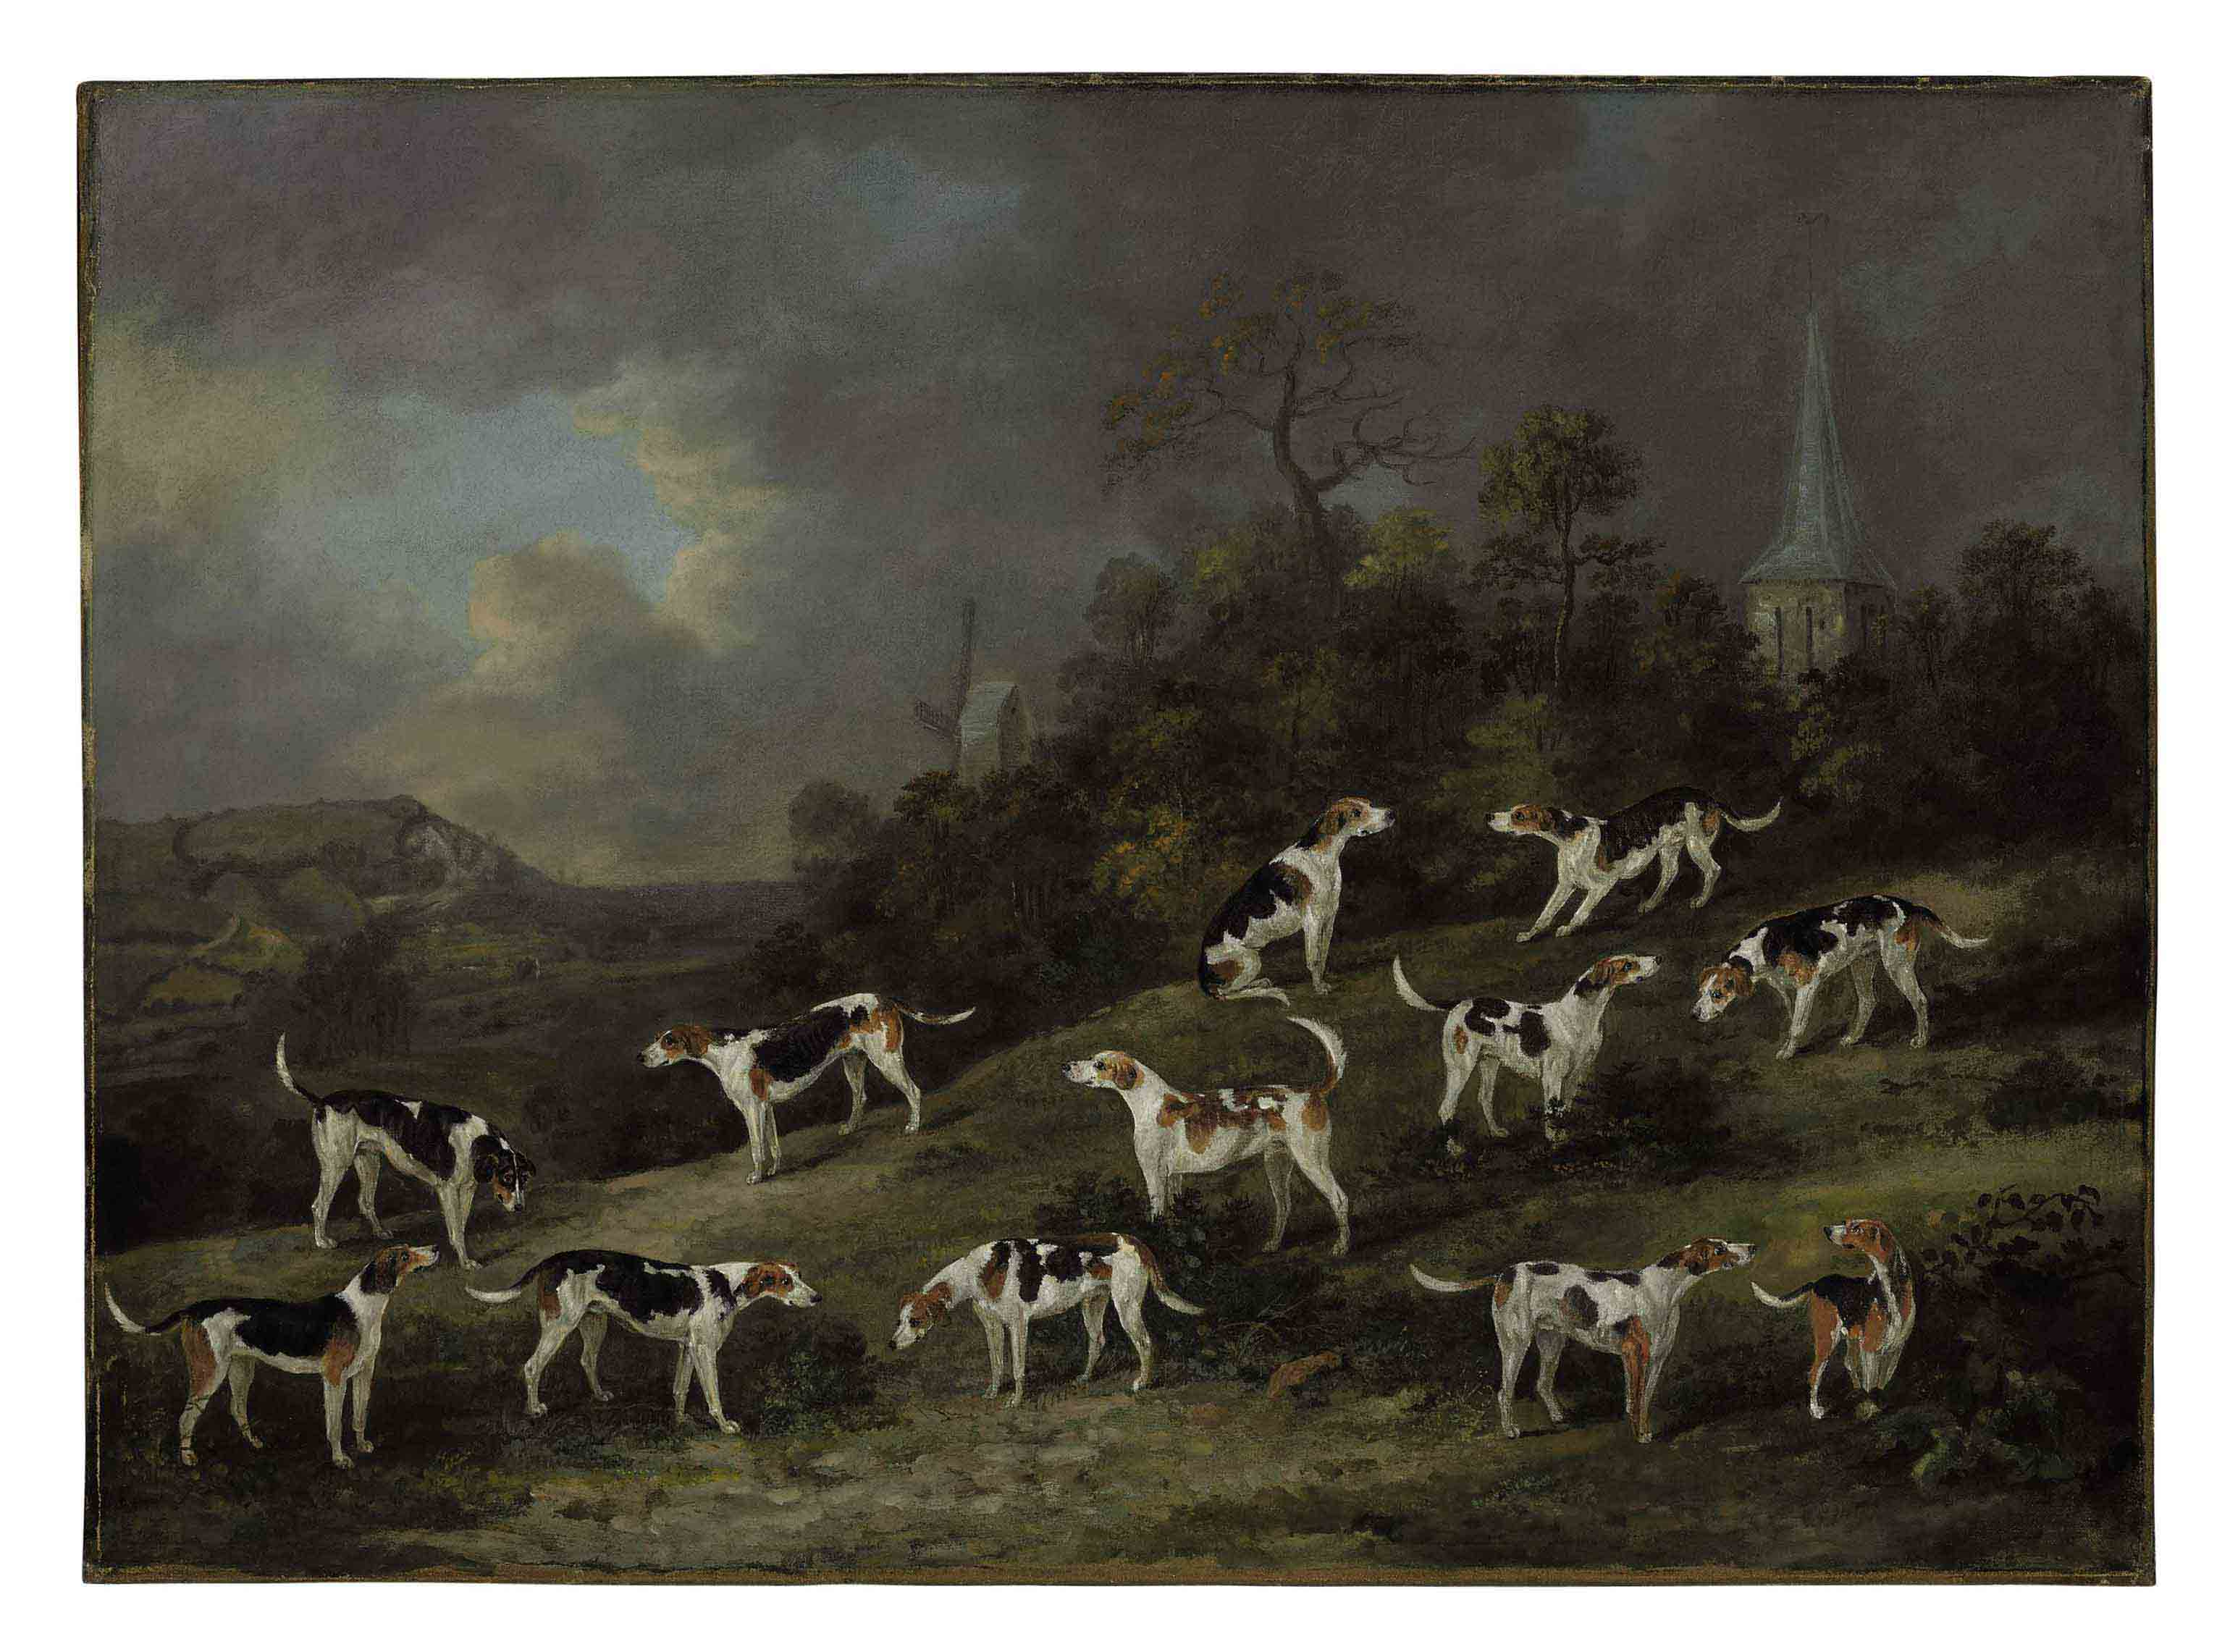 Hounds of Colonel Hylton Joliffe of Merstham House, Surrey with Merstham Church and Mill beyond